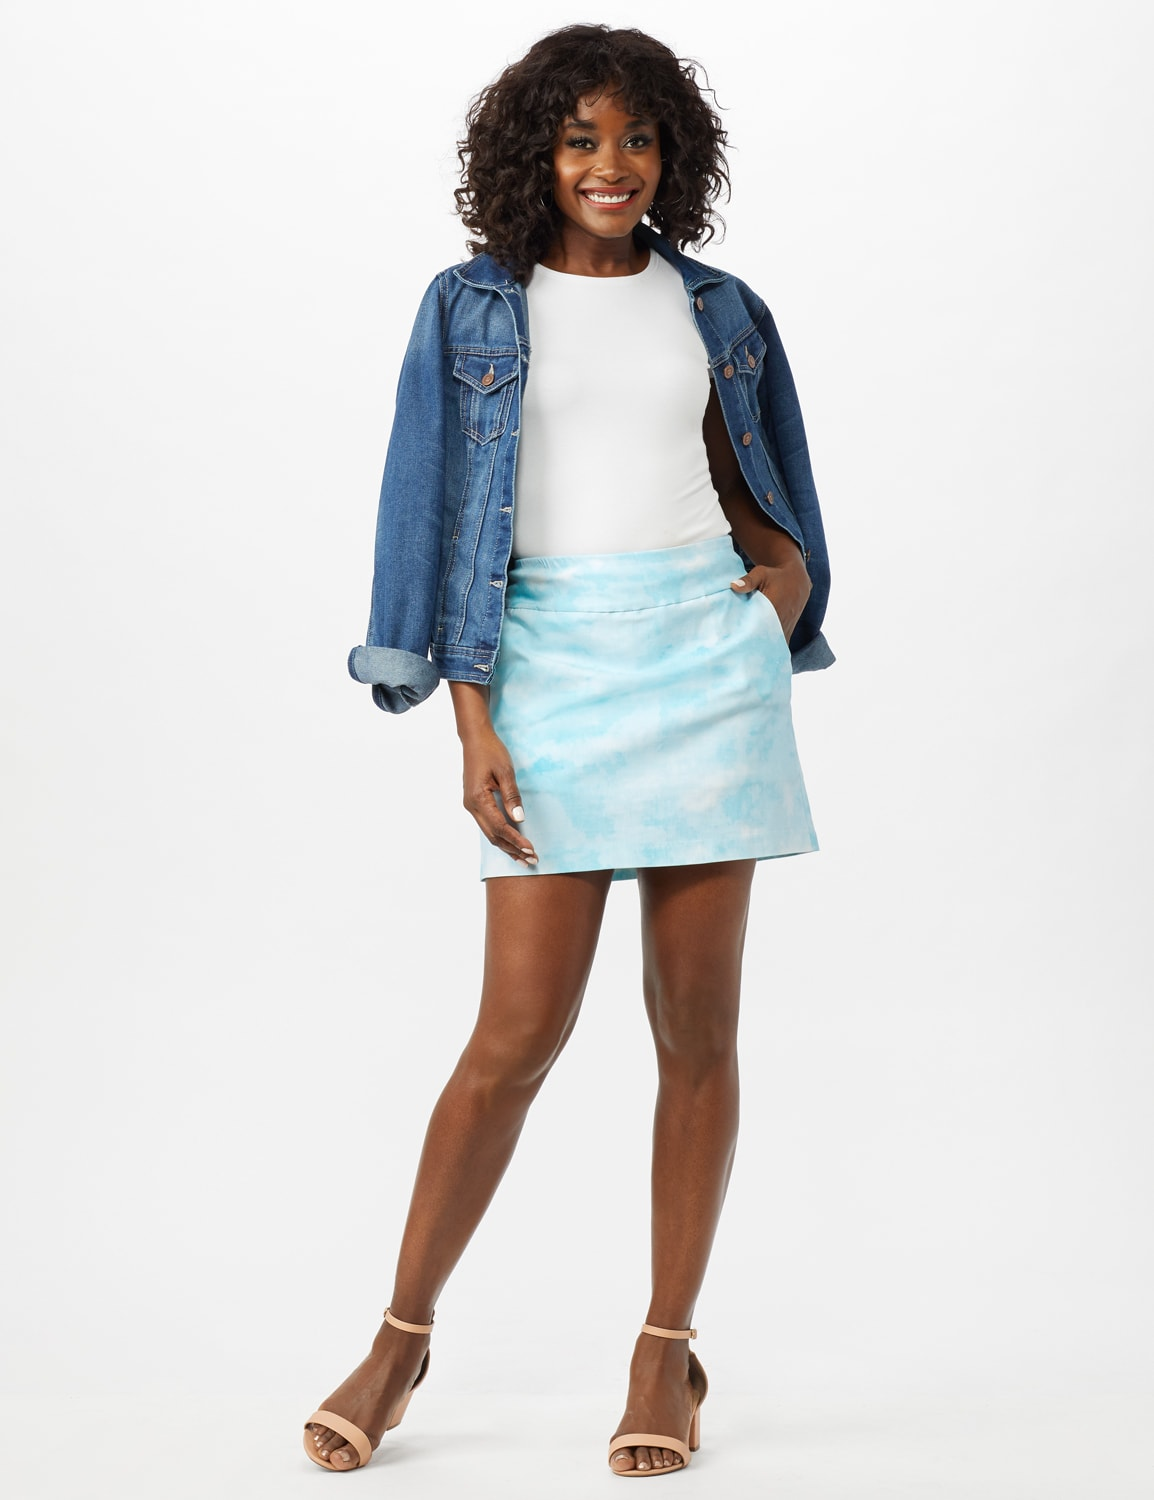 Pull On Tie Dye Skorts with Pockets - Azurine/White - Front